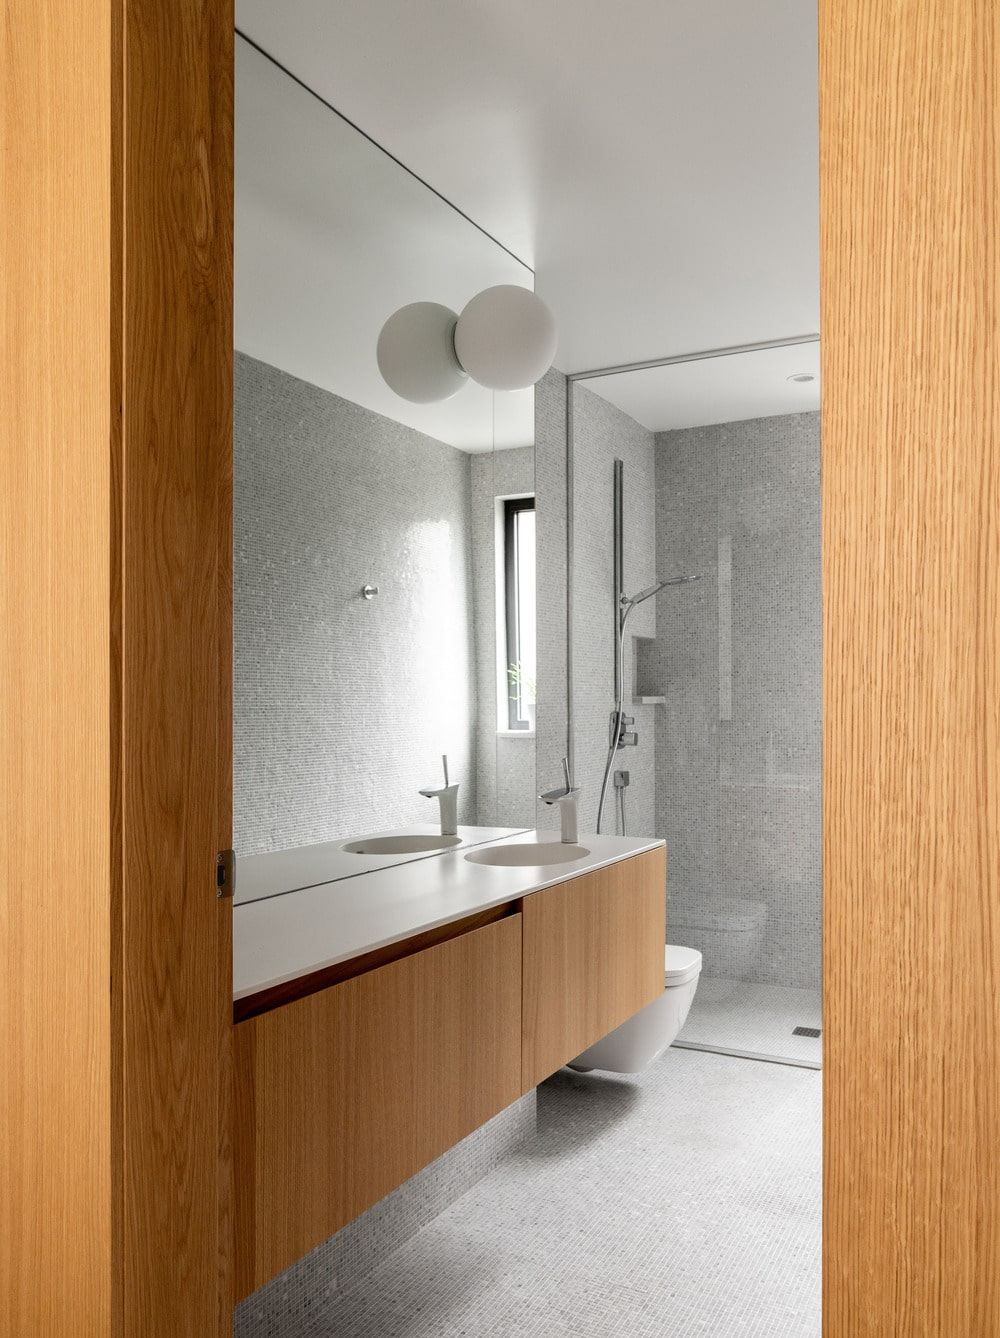 Next to the floating wooden vanity is the toilet, followed by the shower area.